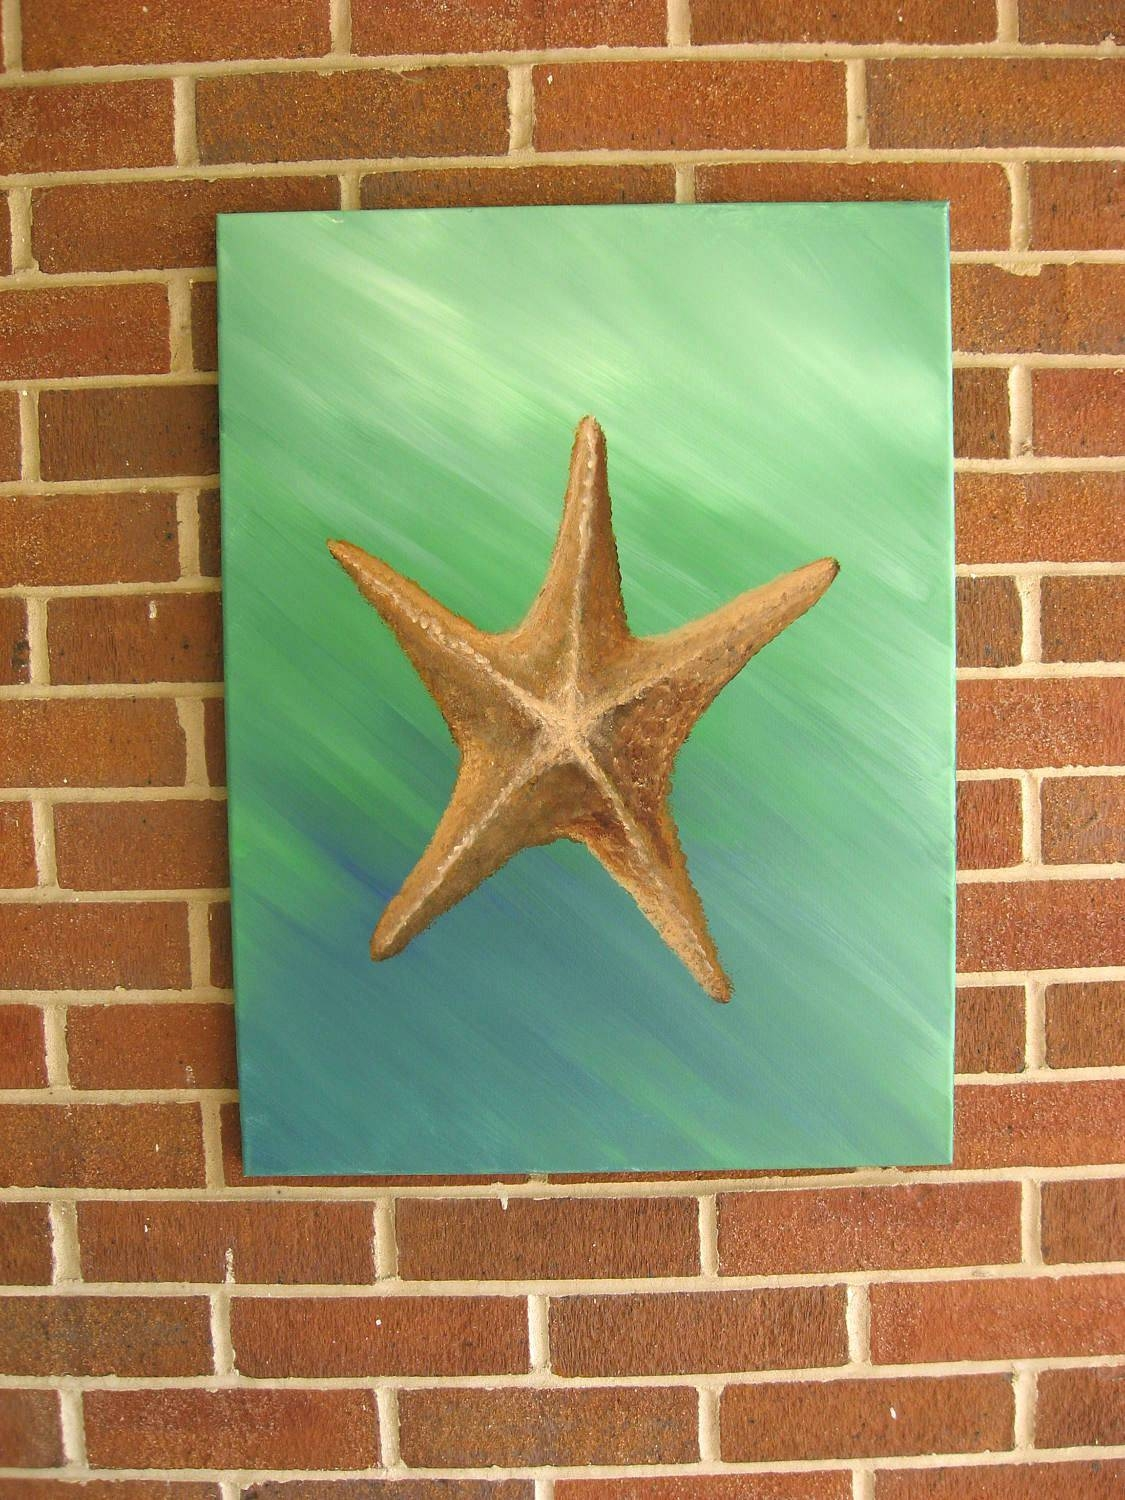 Wall Decor : Starfish Seagrass Wall Decor Pier 1 Imports Splendid In Latest Large Starfish Wall Decors (View 14 of 25)